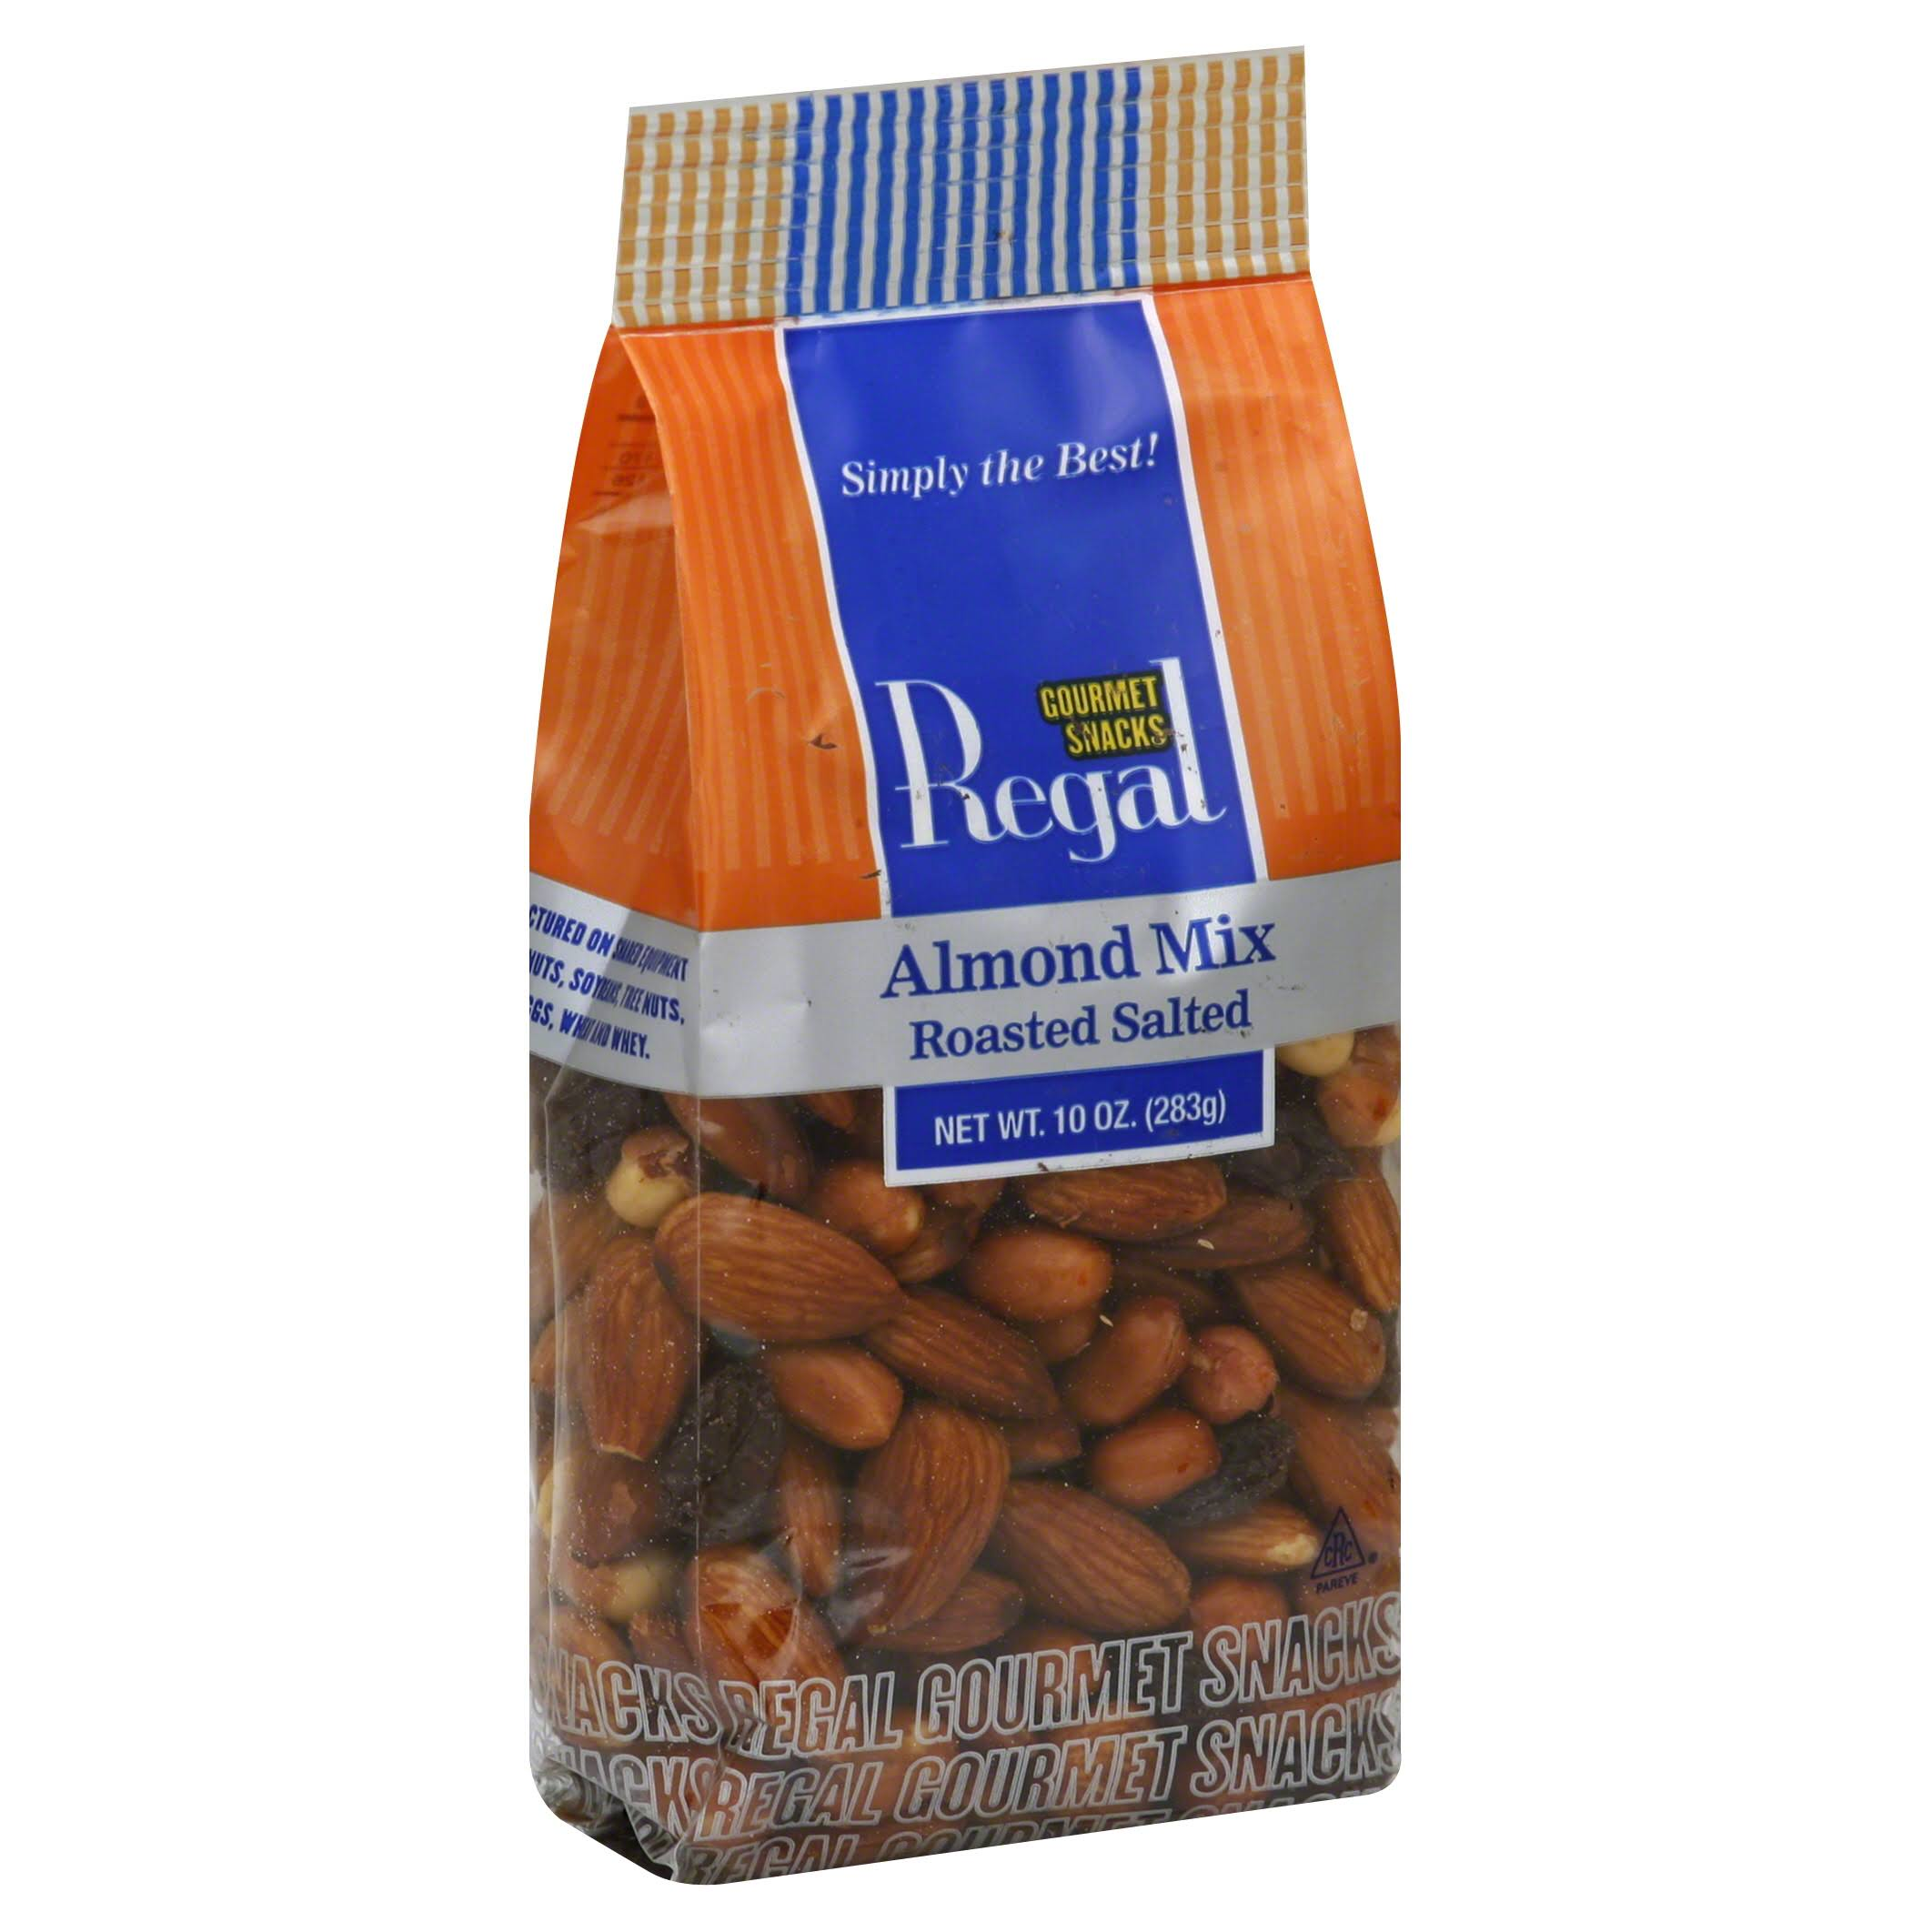 Regal Almond Mix, Roasted Salted - 10 oz